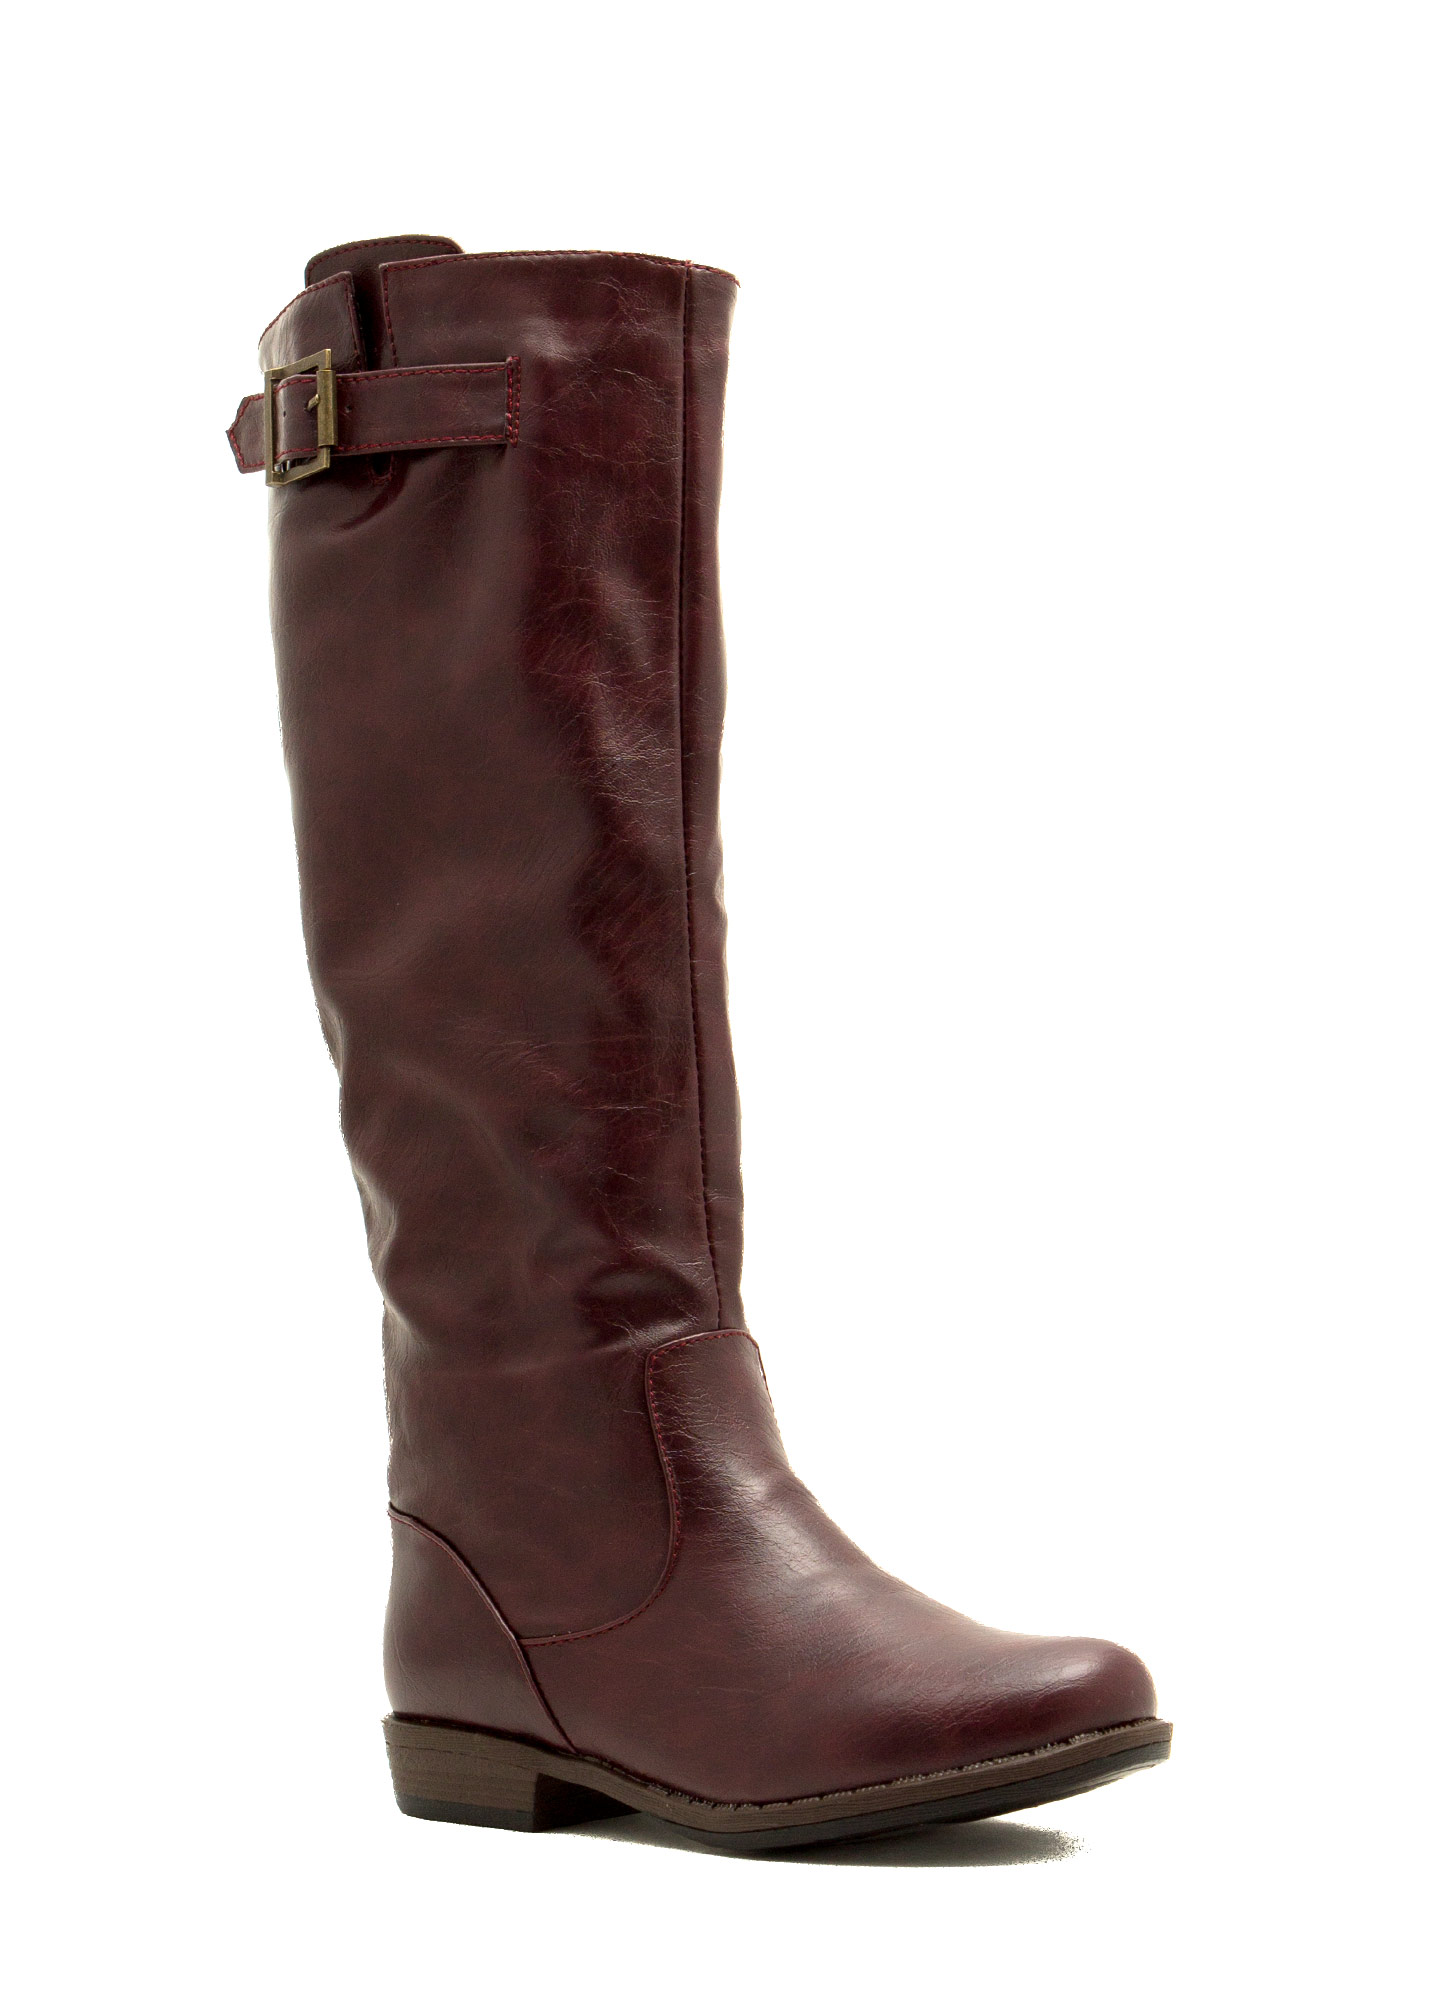 Leather Riding Boots OXBLOOD